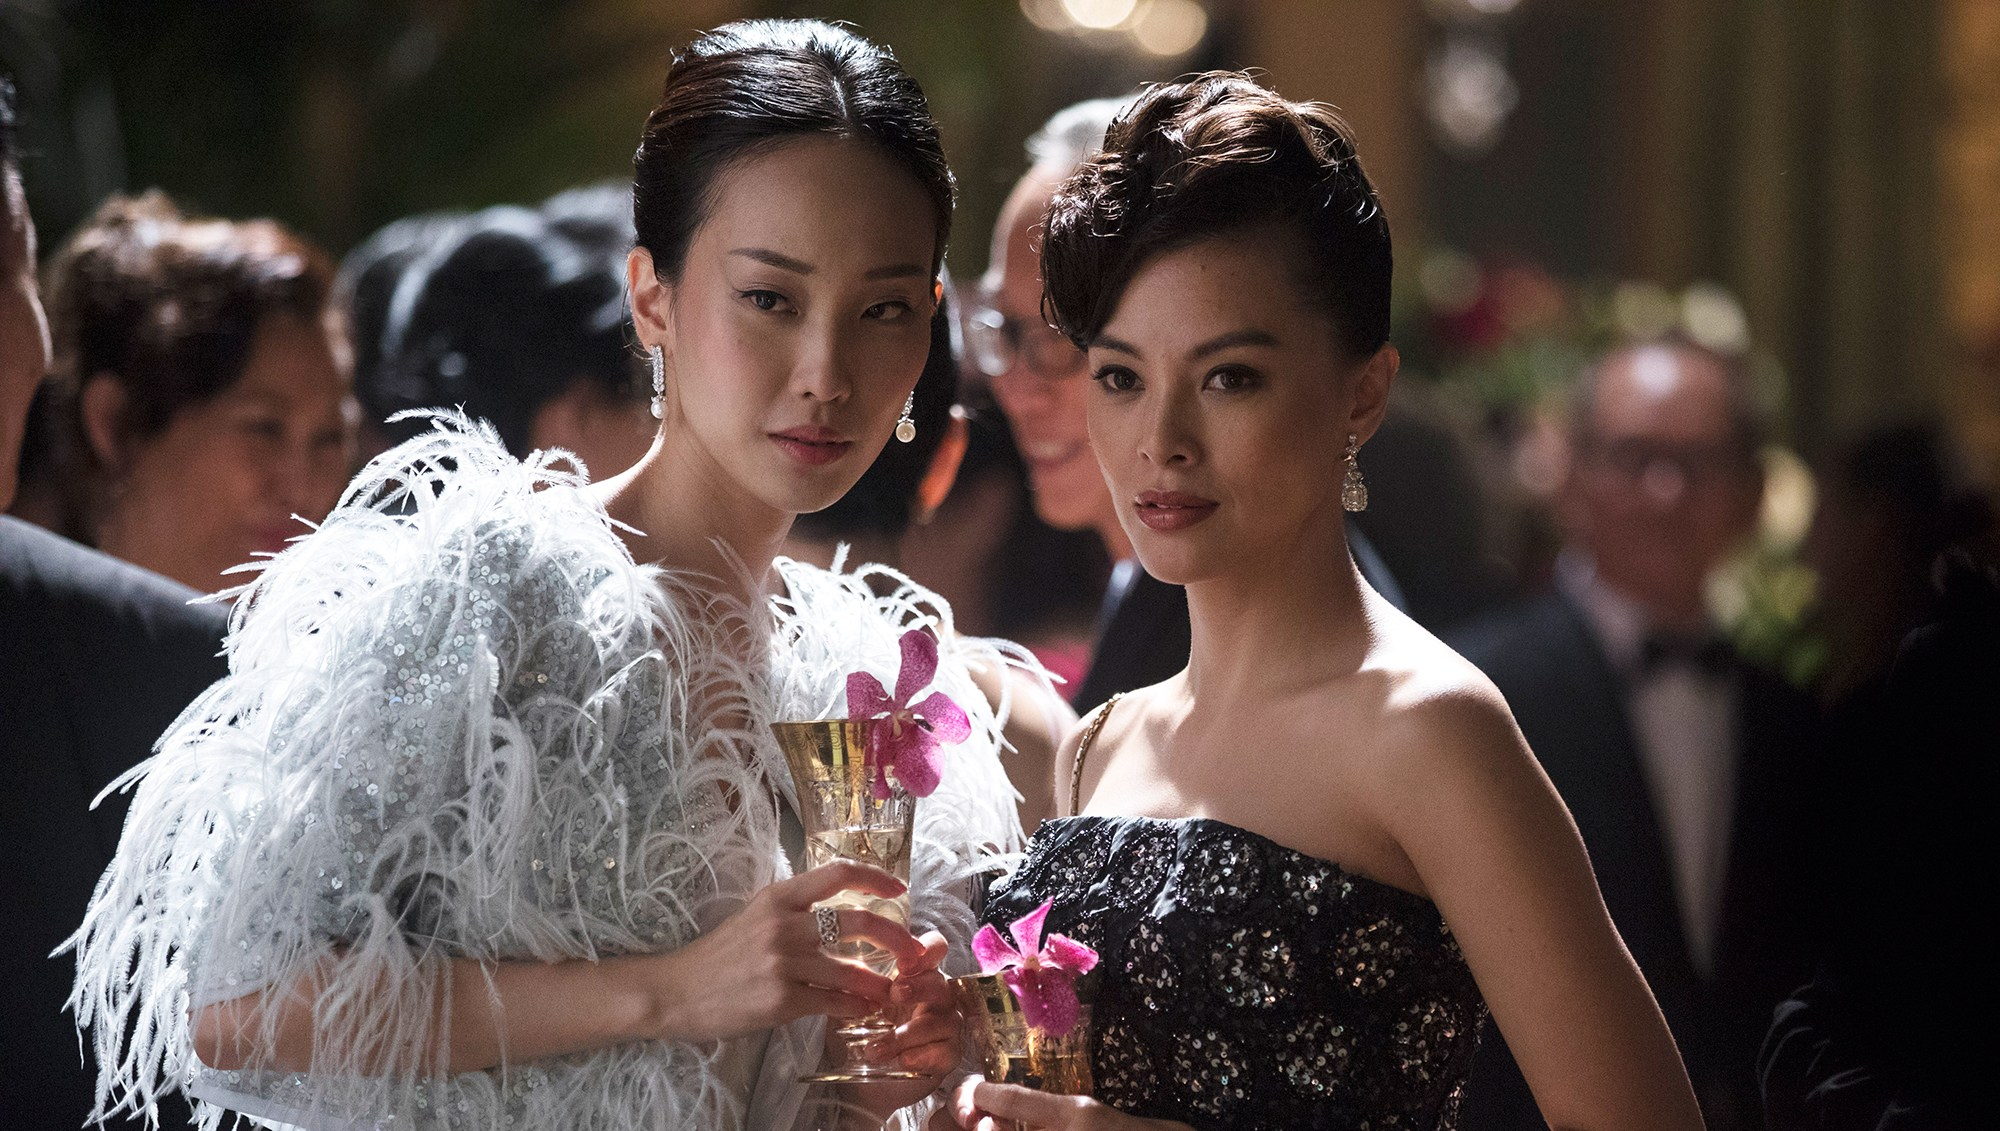 Mixologist Peter Chua Shares 'Crazy Rich Asians'-Inspired Cocktail Recipe